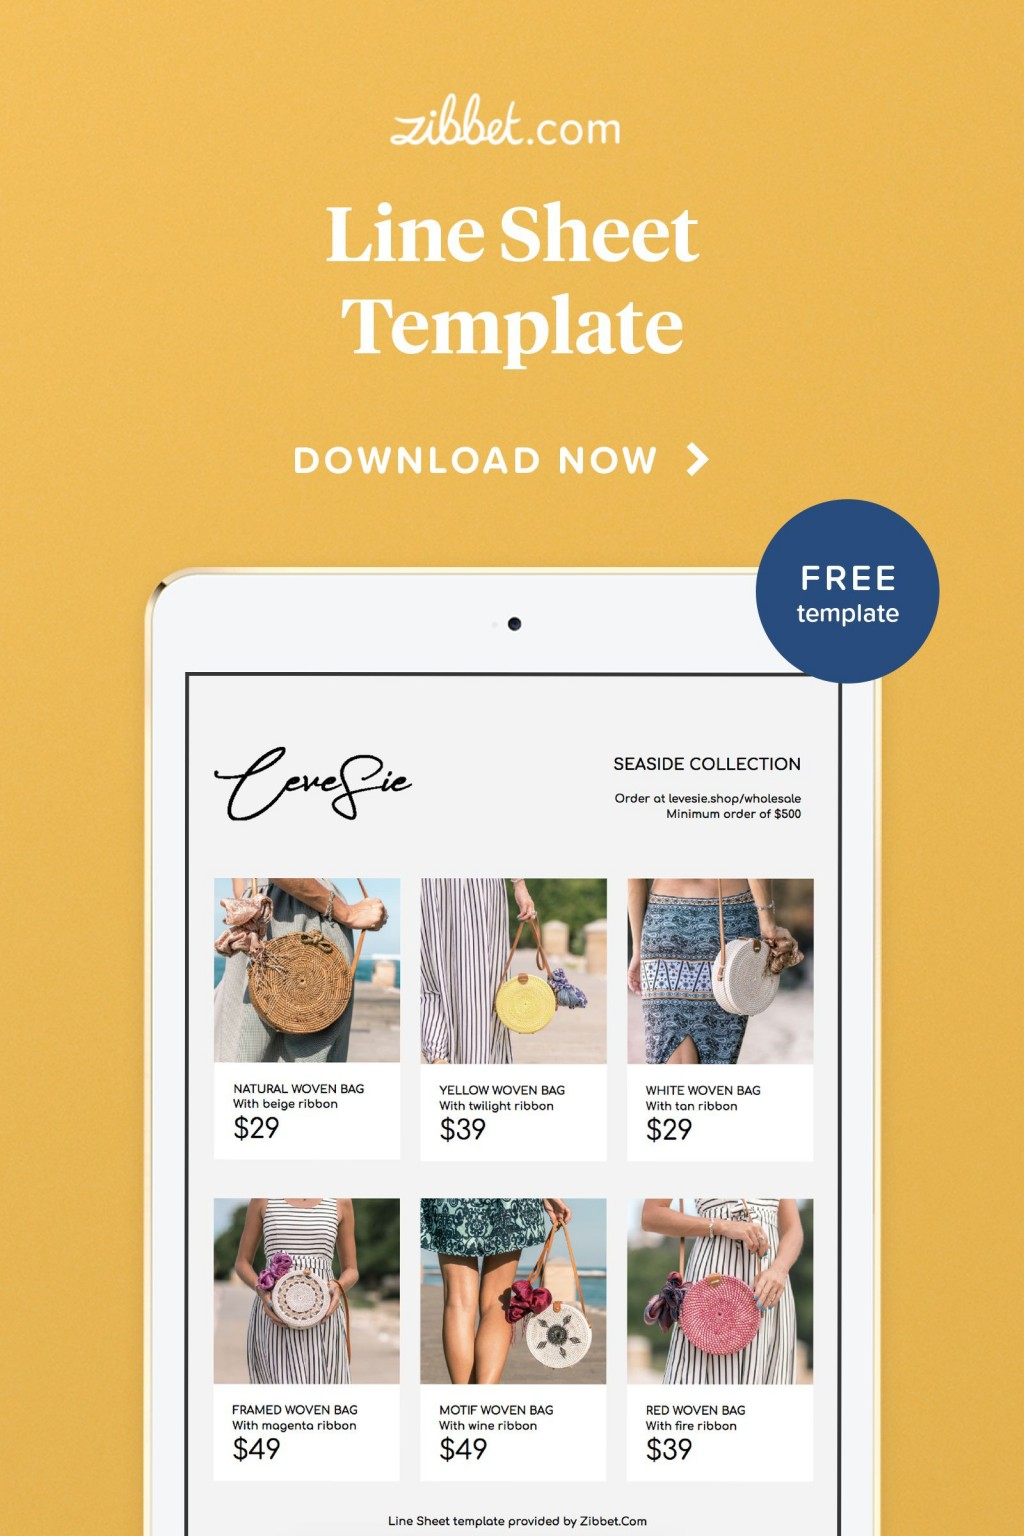 009 Staggering Wholesale Line Sheet Template Image  Fashion Free ExcelLarge